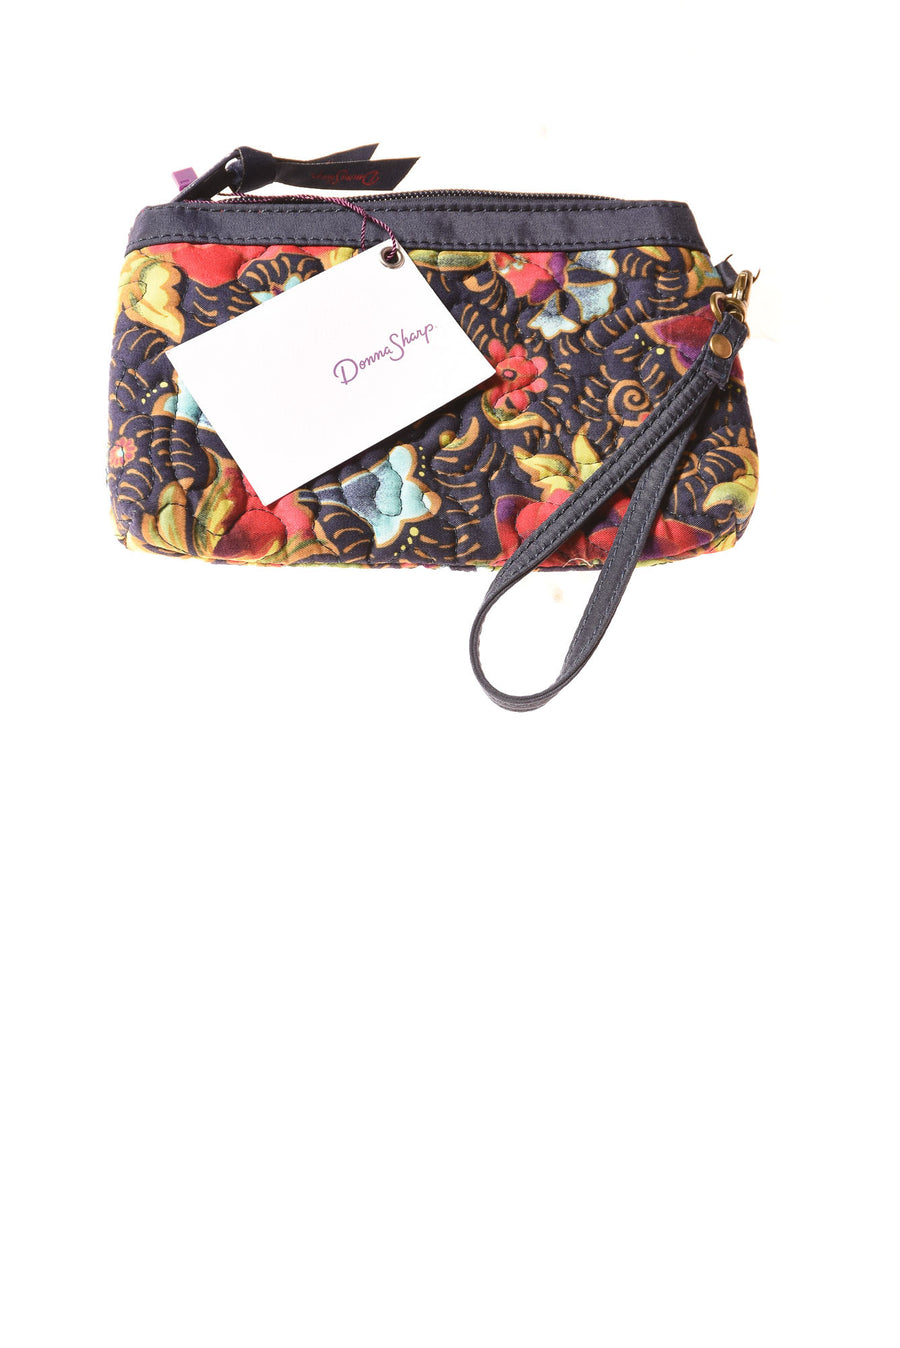 NEW Donna Sharp Women's Handbag N/A Navy Floral